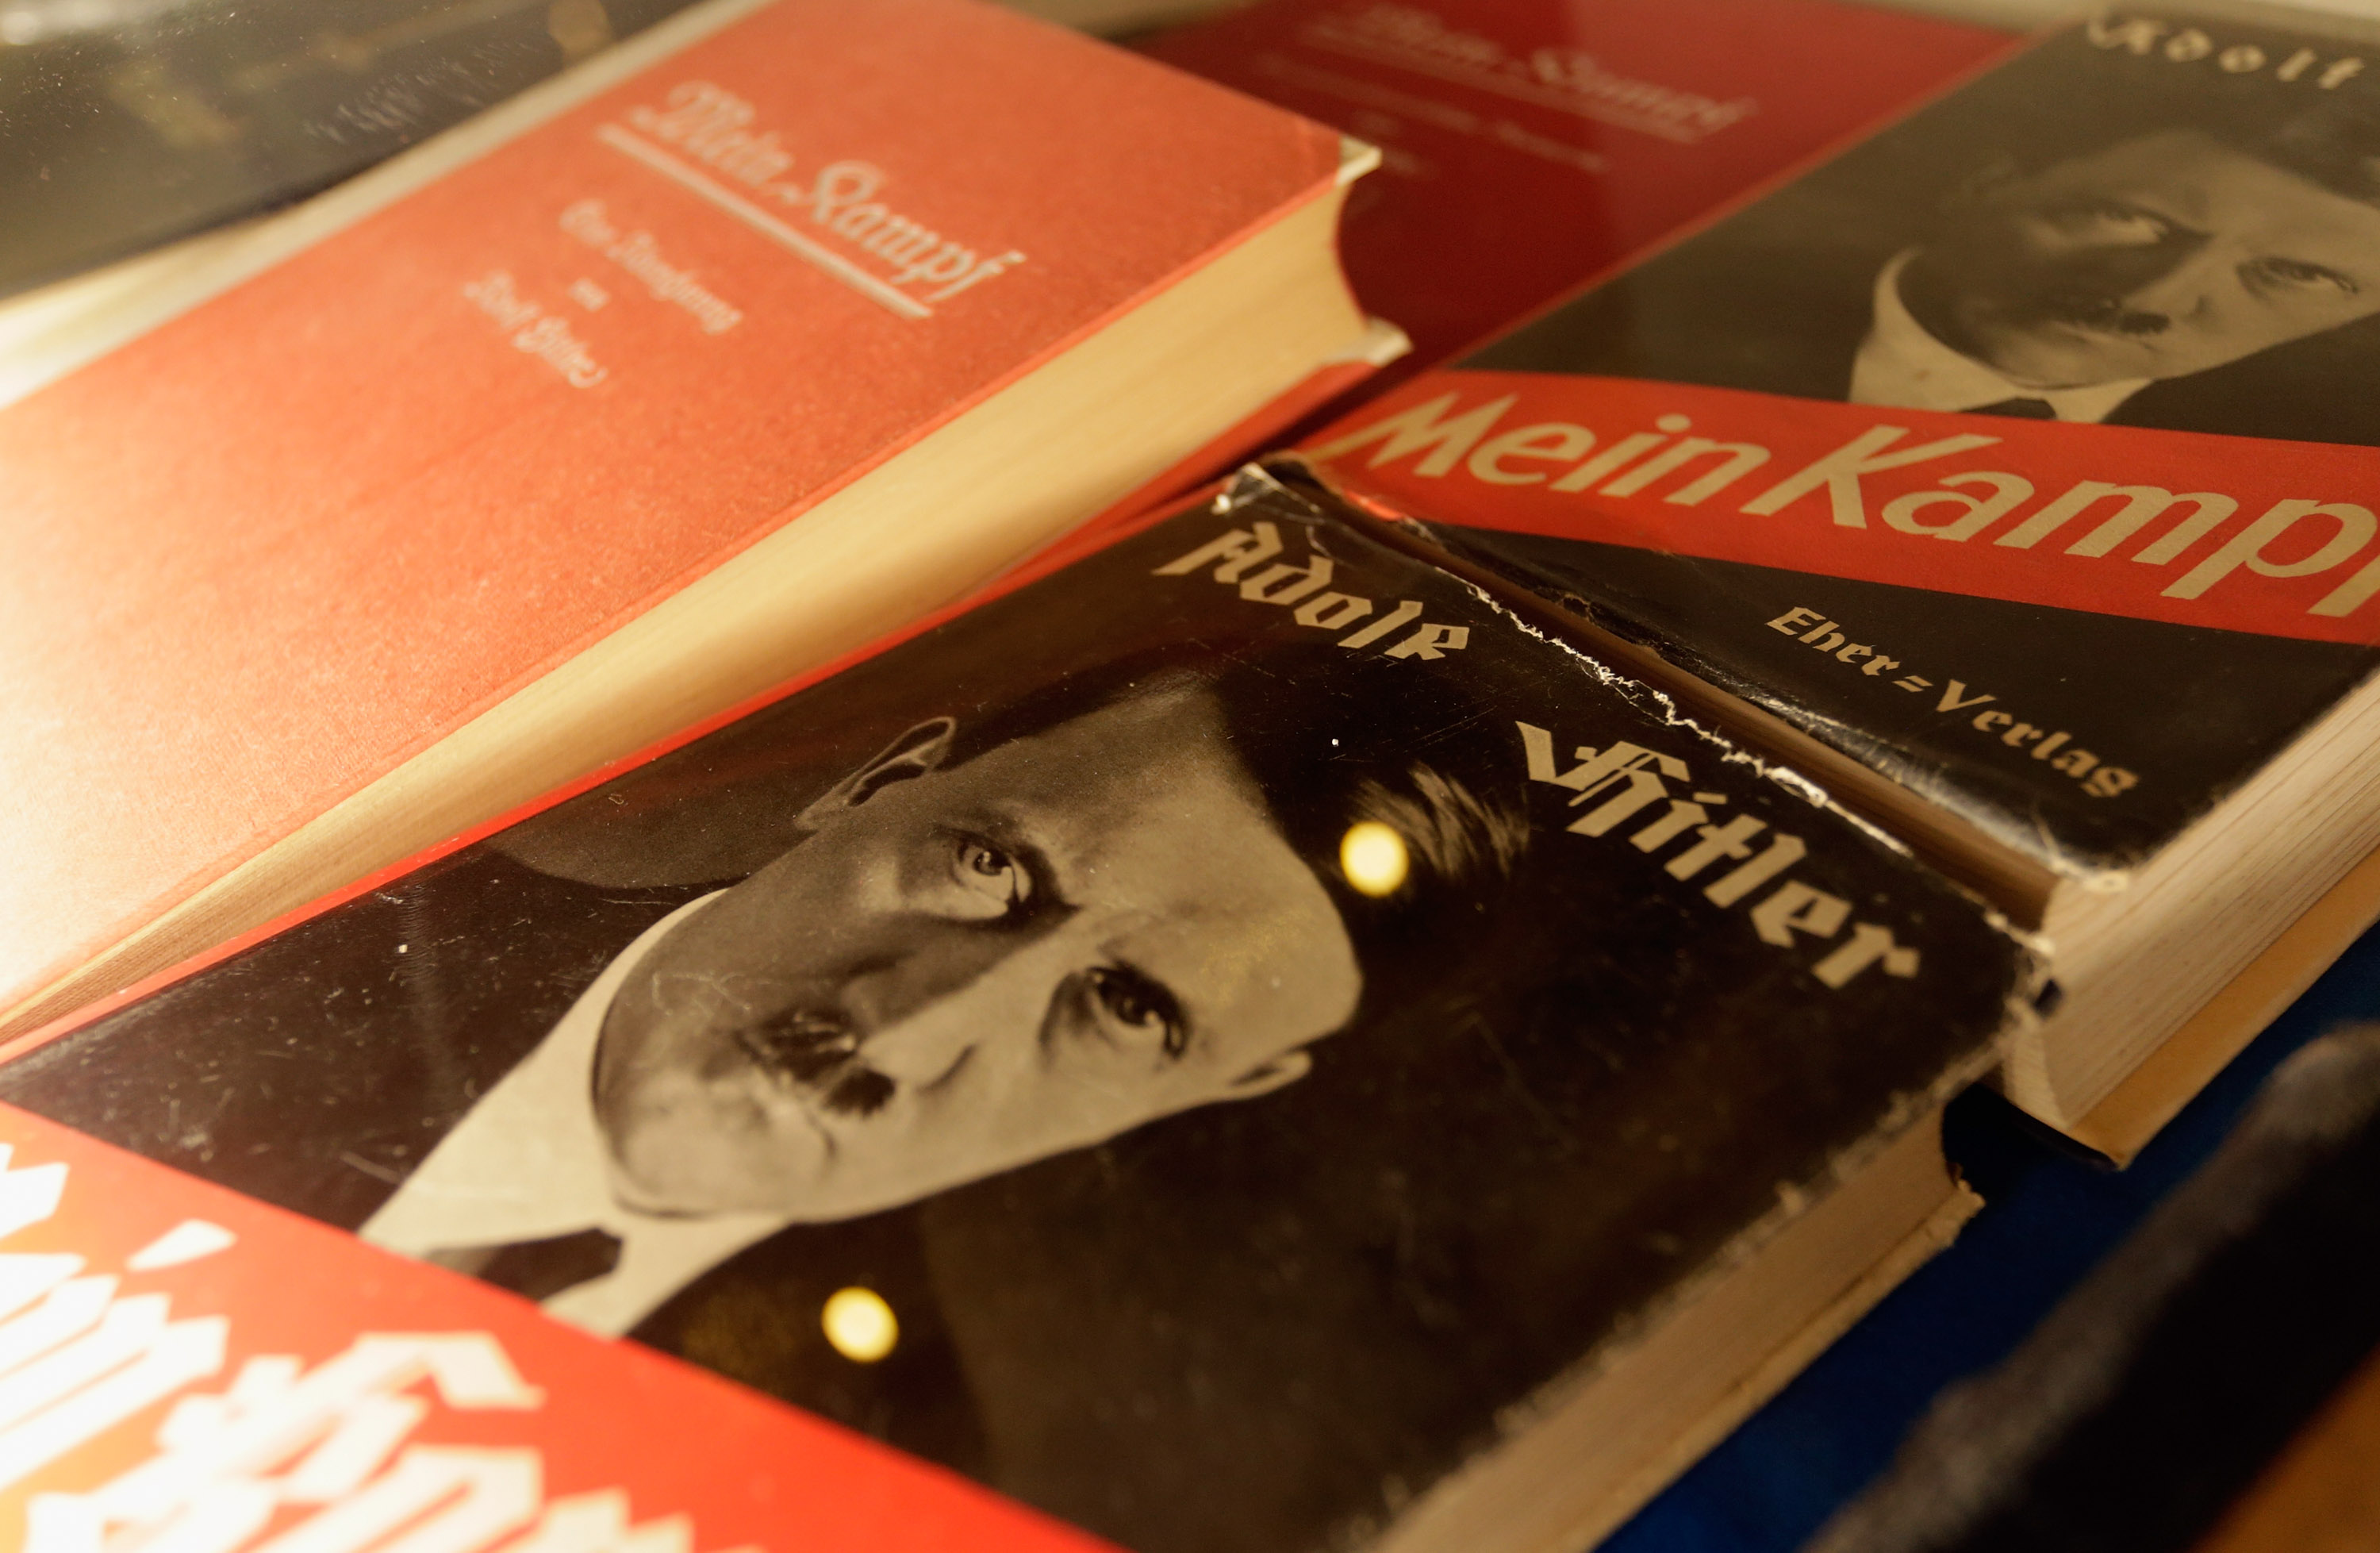 Historic copies of Adolf Hitler's  Mein Kampf  are displayed during the book launch of a new critical edition at the Institut fuer Zeitgeschichte (Institute for Contemporary History) on January 8, 2016 in Munich, Germany.